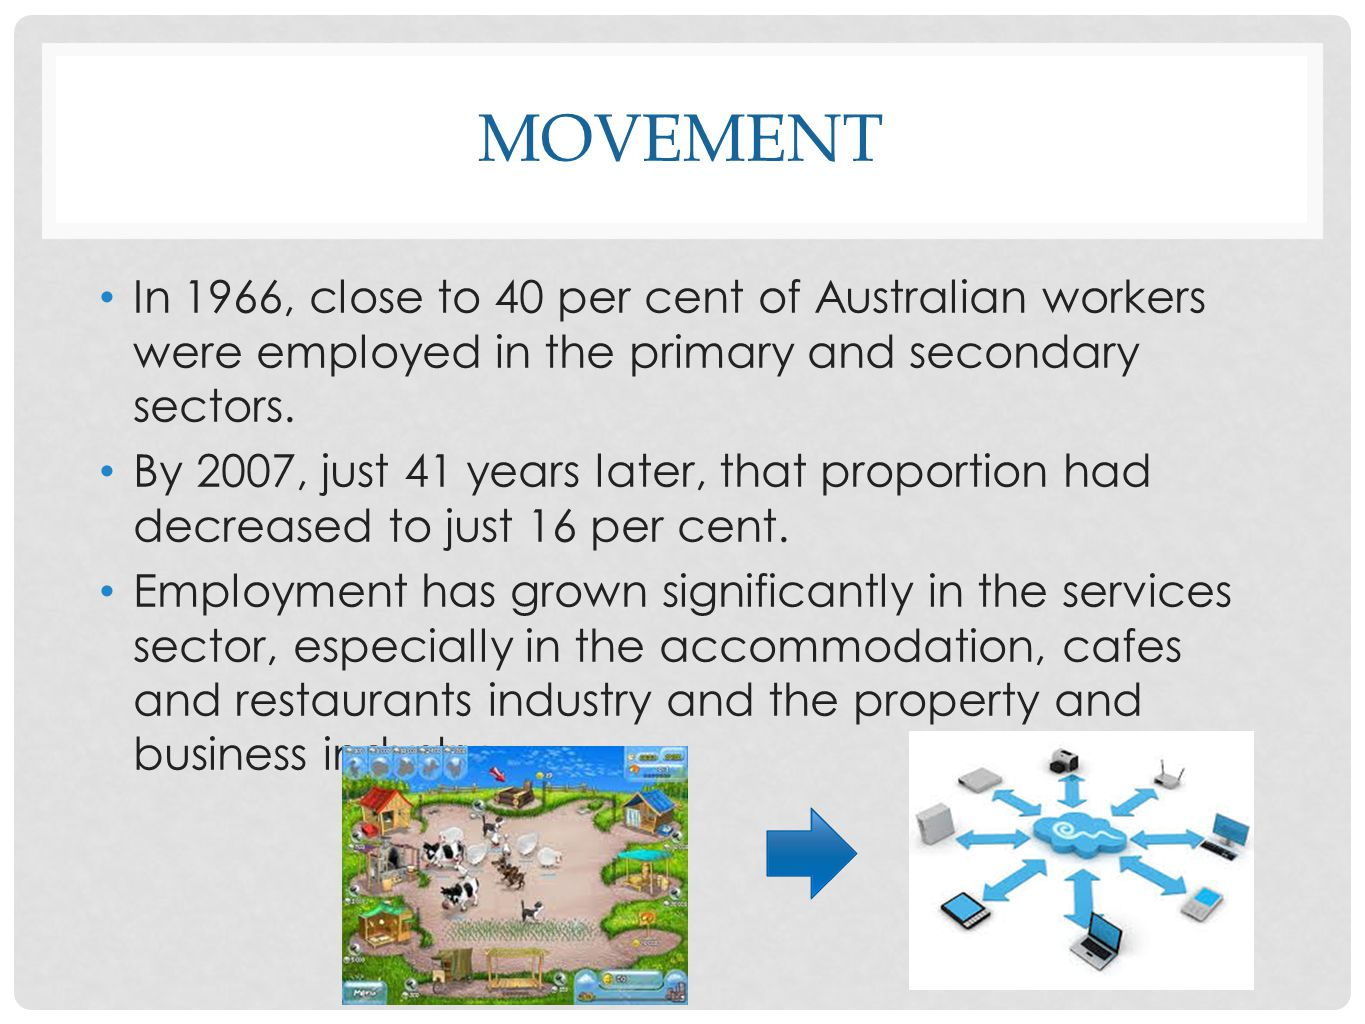 movement In 1966, close to 40 per cent of Australian workers were employed in the primary and secondary sectors.